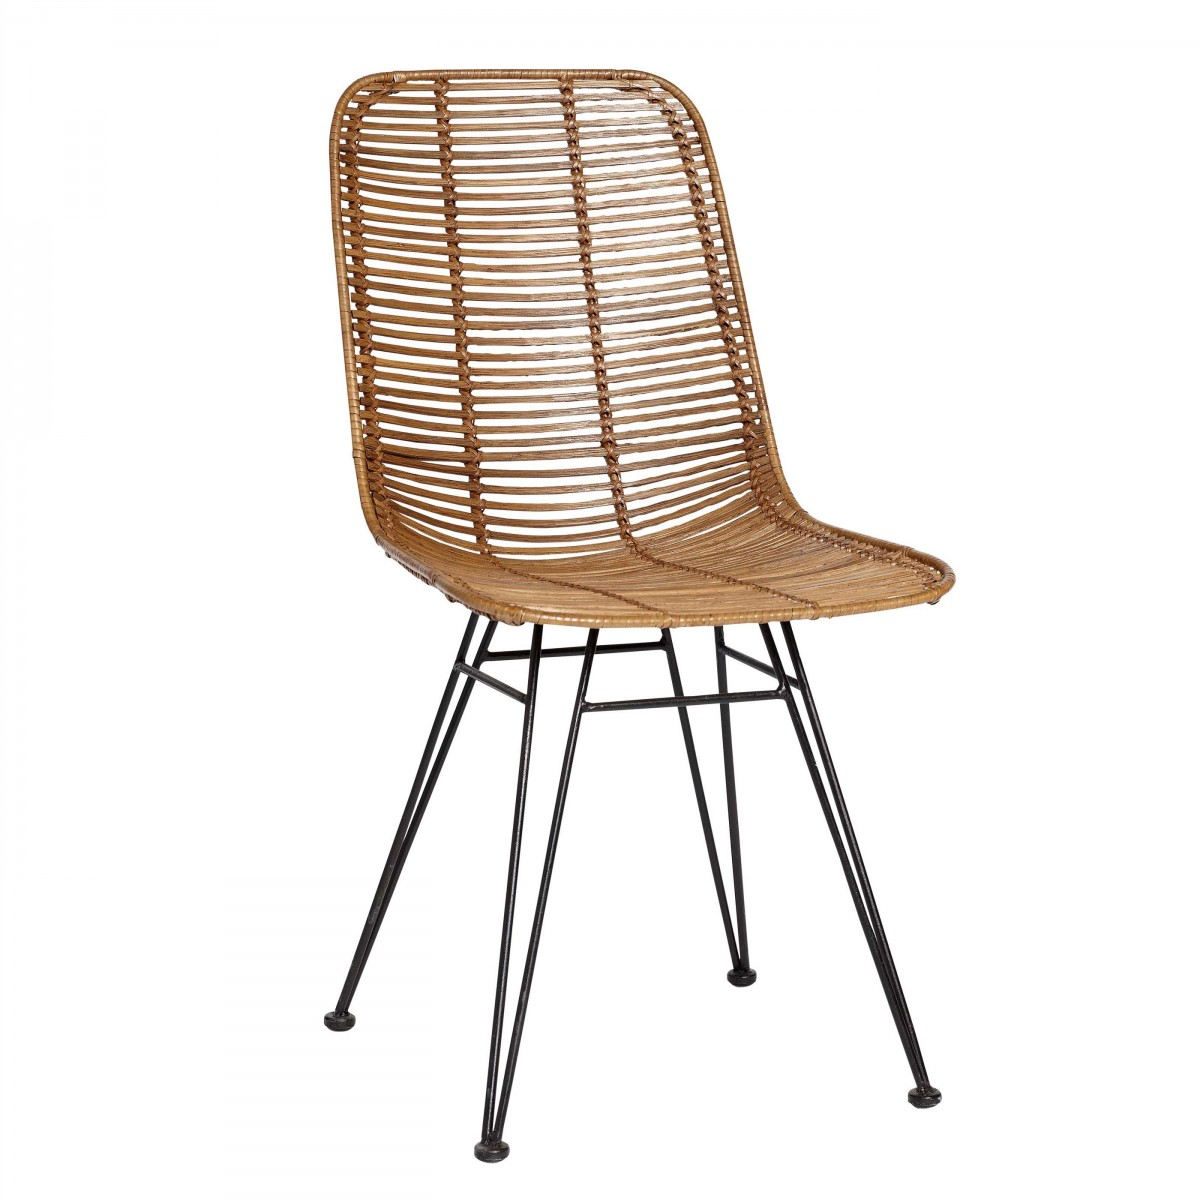 STUDIO Chair In Natural Rattan With Steel Base HBSCH